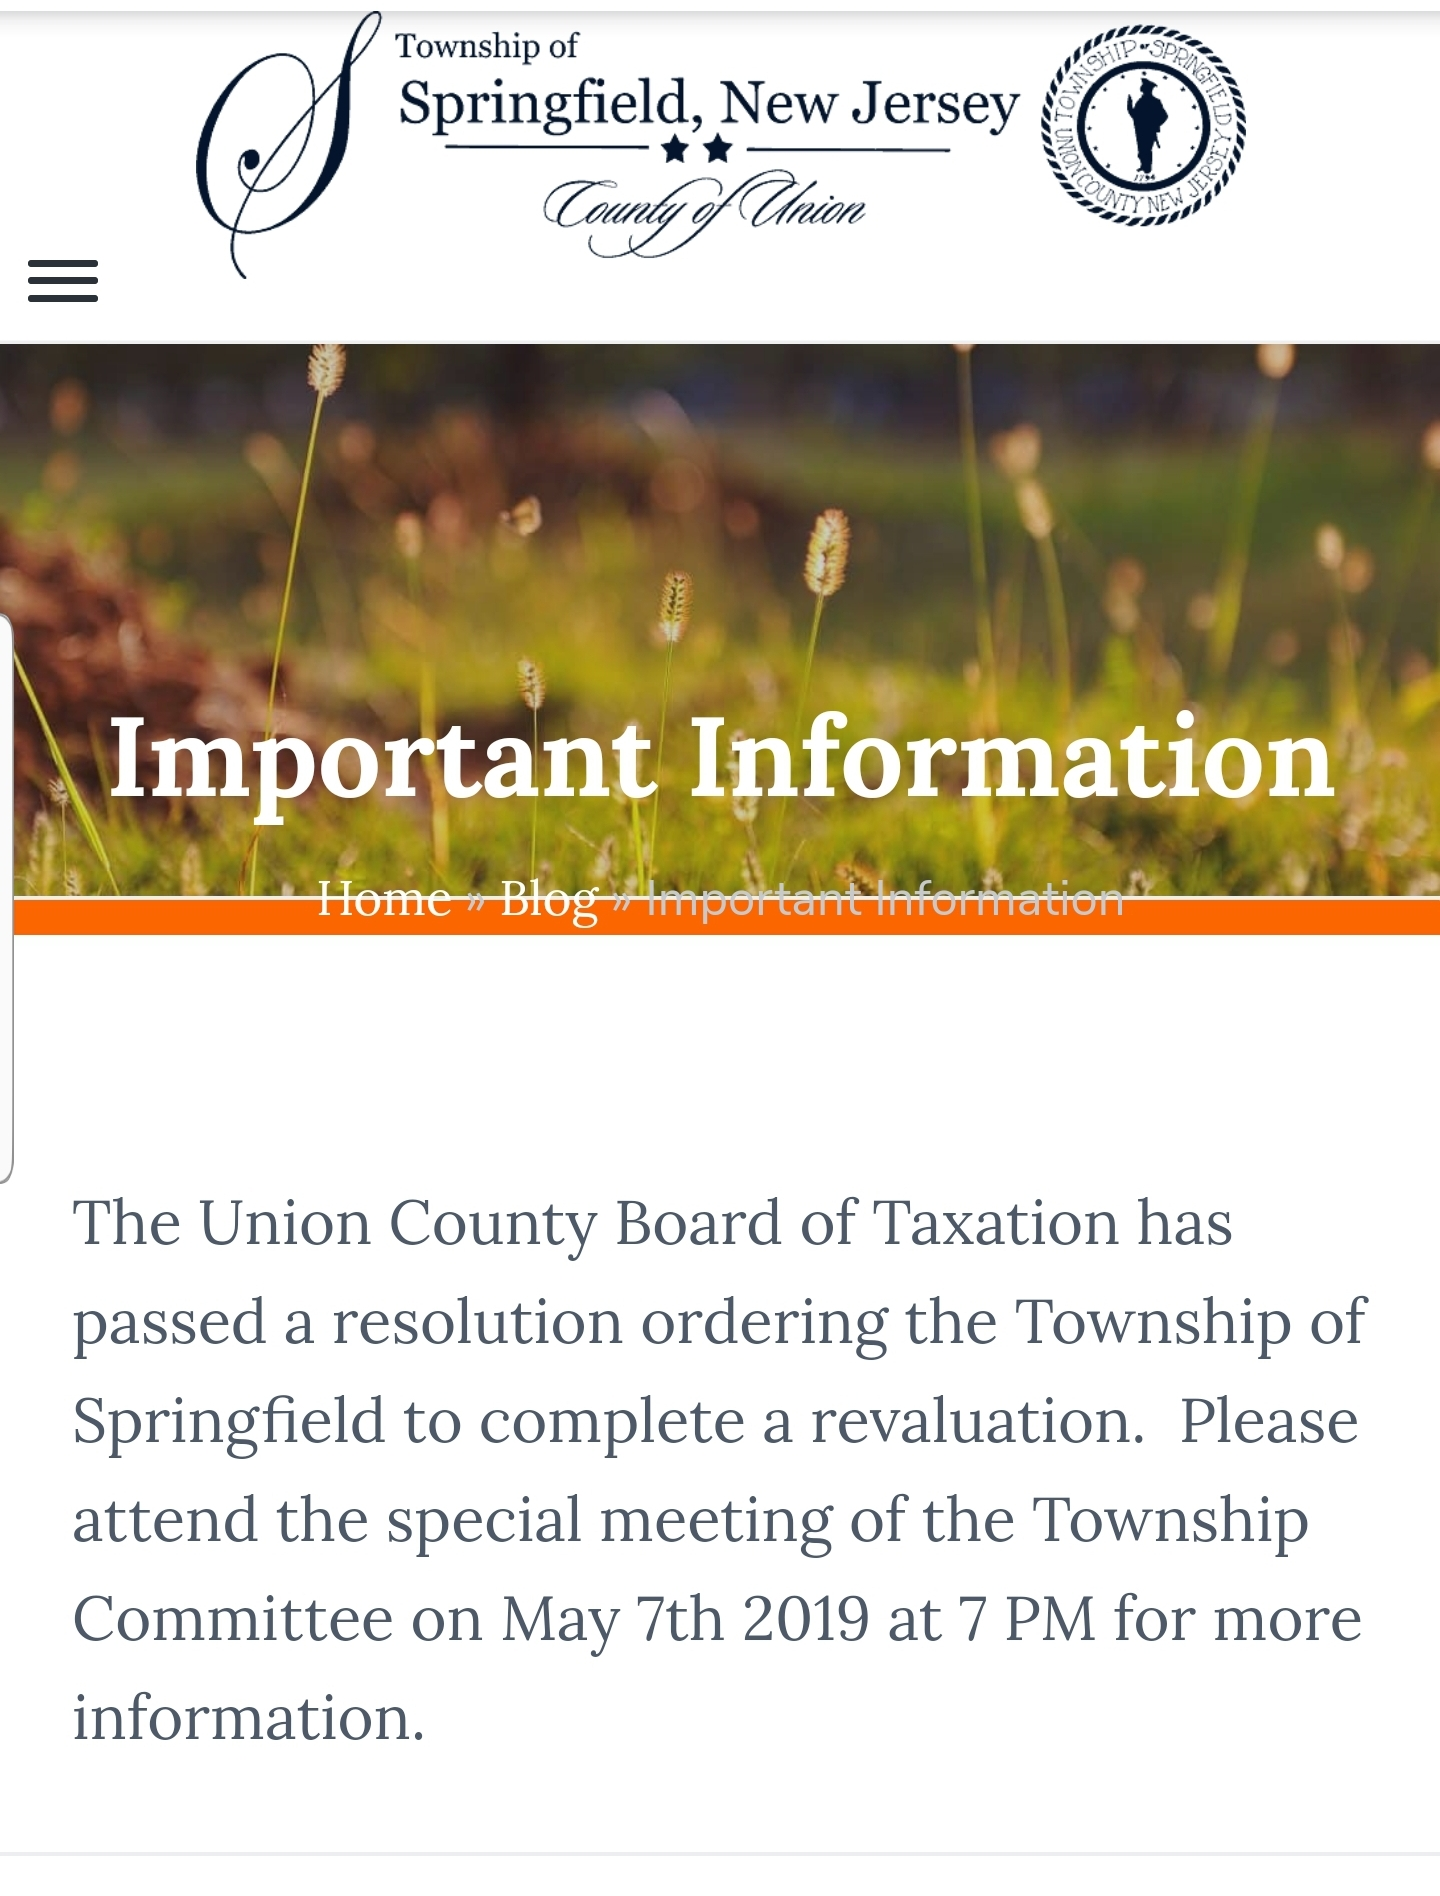 Official News from the Township of Springfield, NJ - Click the direct link to the Township of Springfield's official website below for more details and other Springfield news